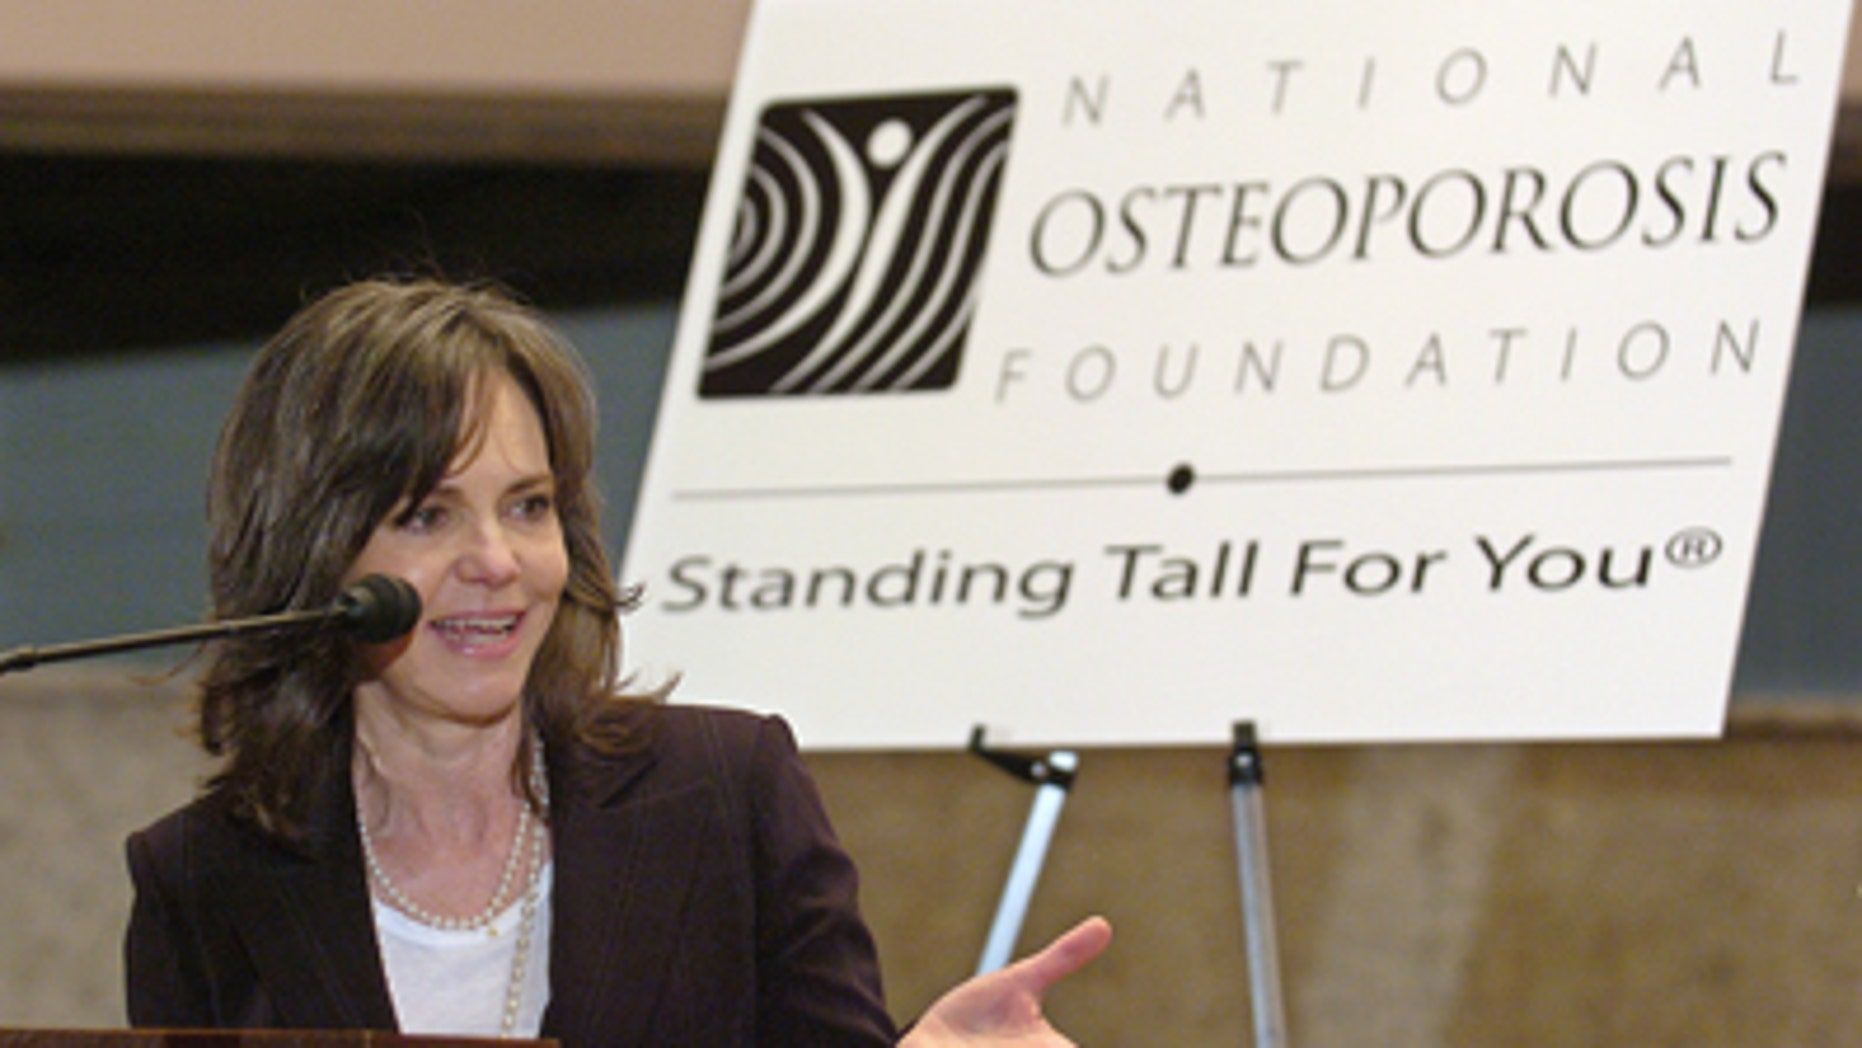 Academy Award-winning actress Sally Field makes remarks at a Capitol Hill briefing on her fight against osteoporosis in Washington in 2007.